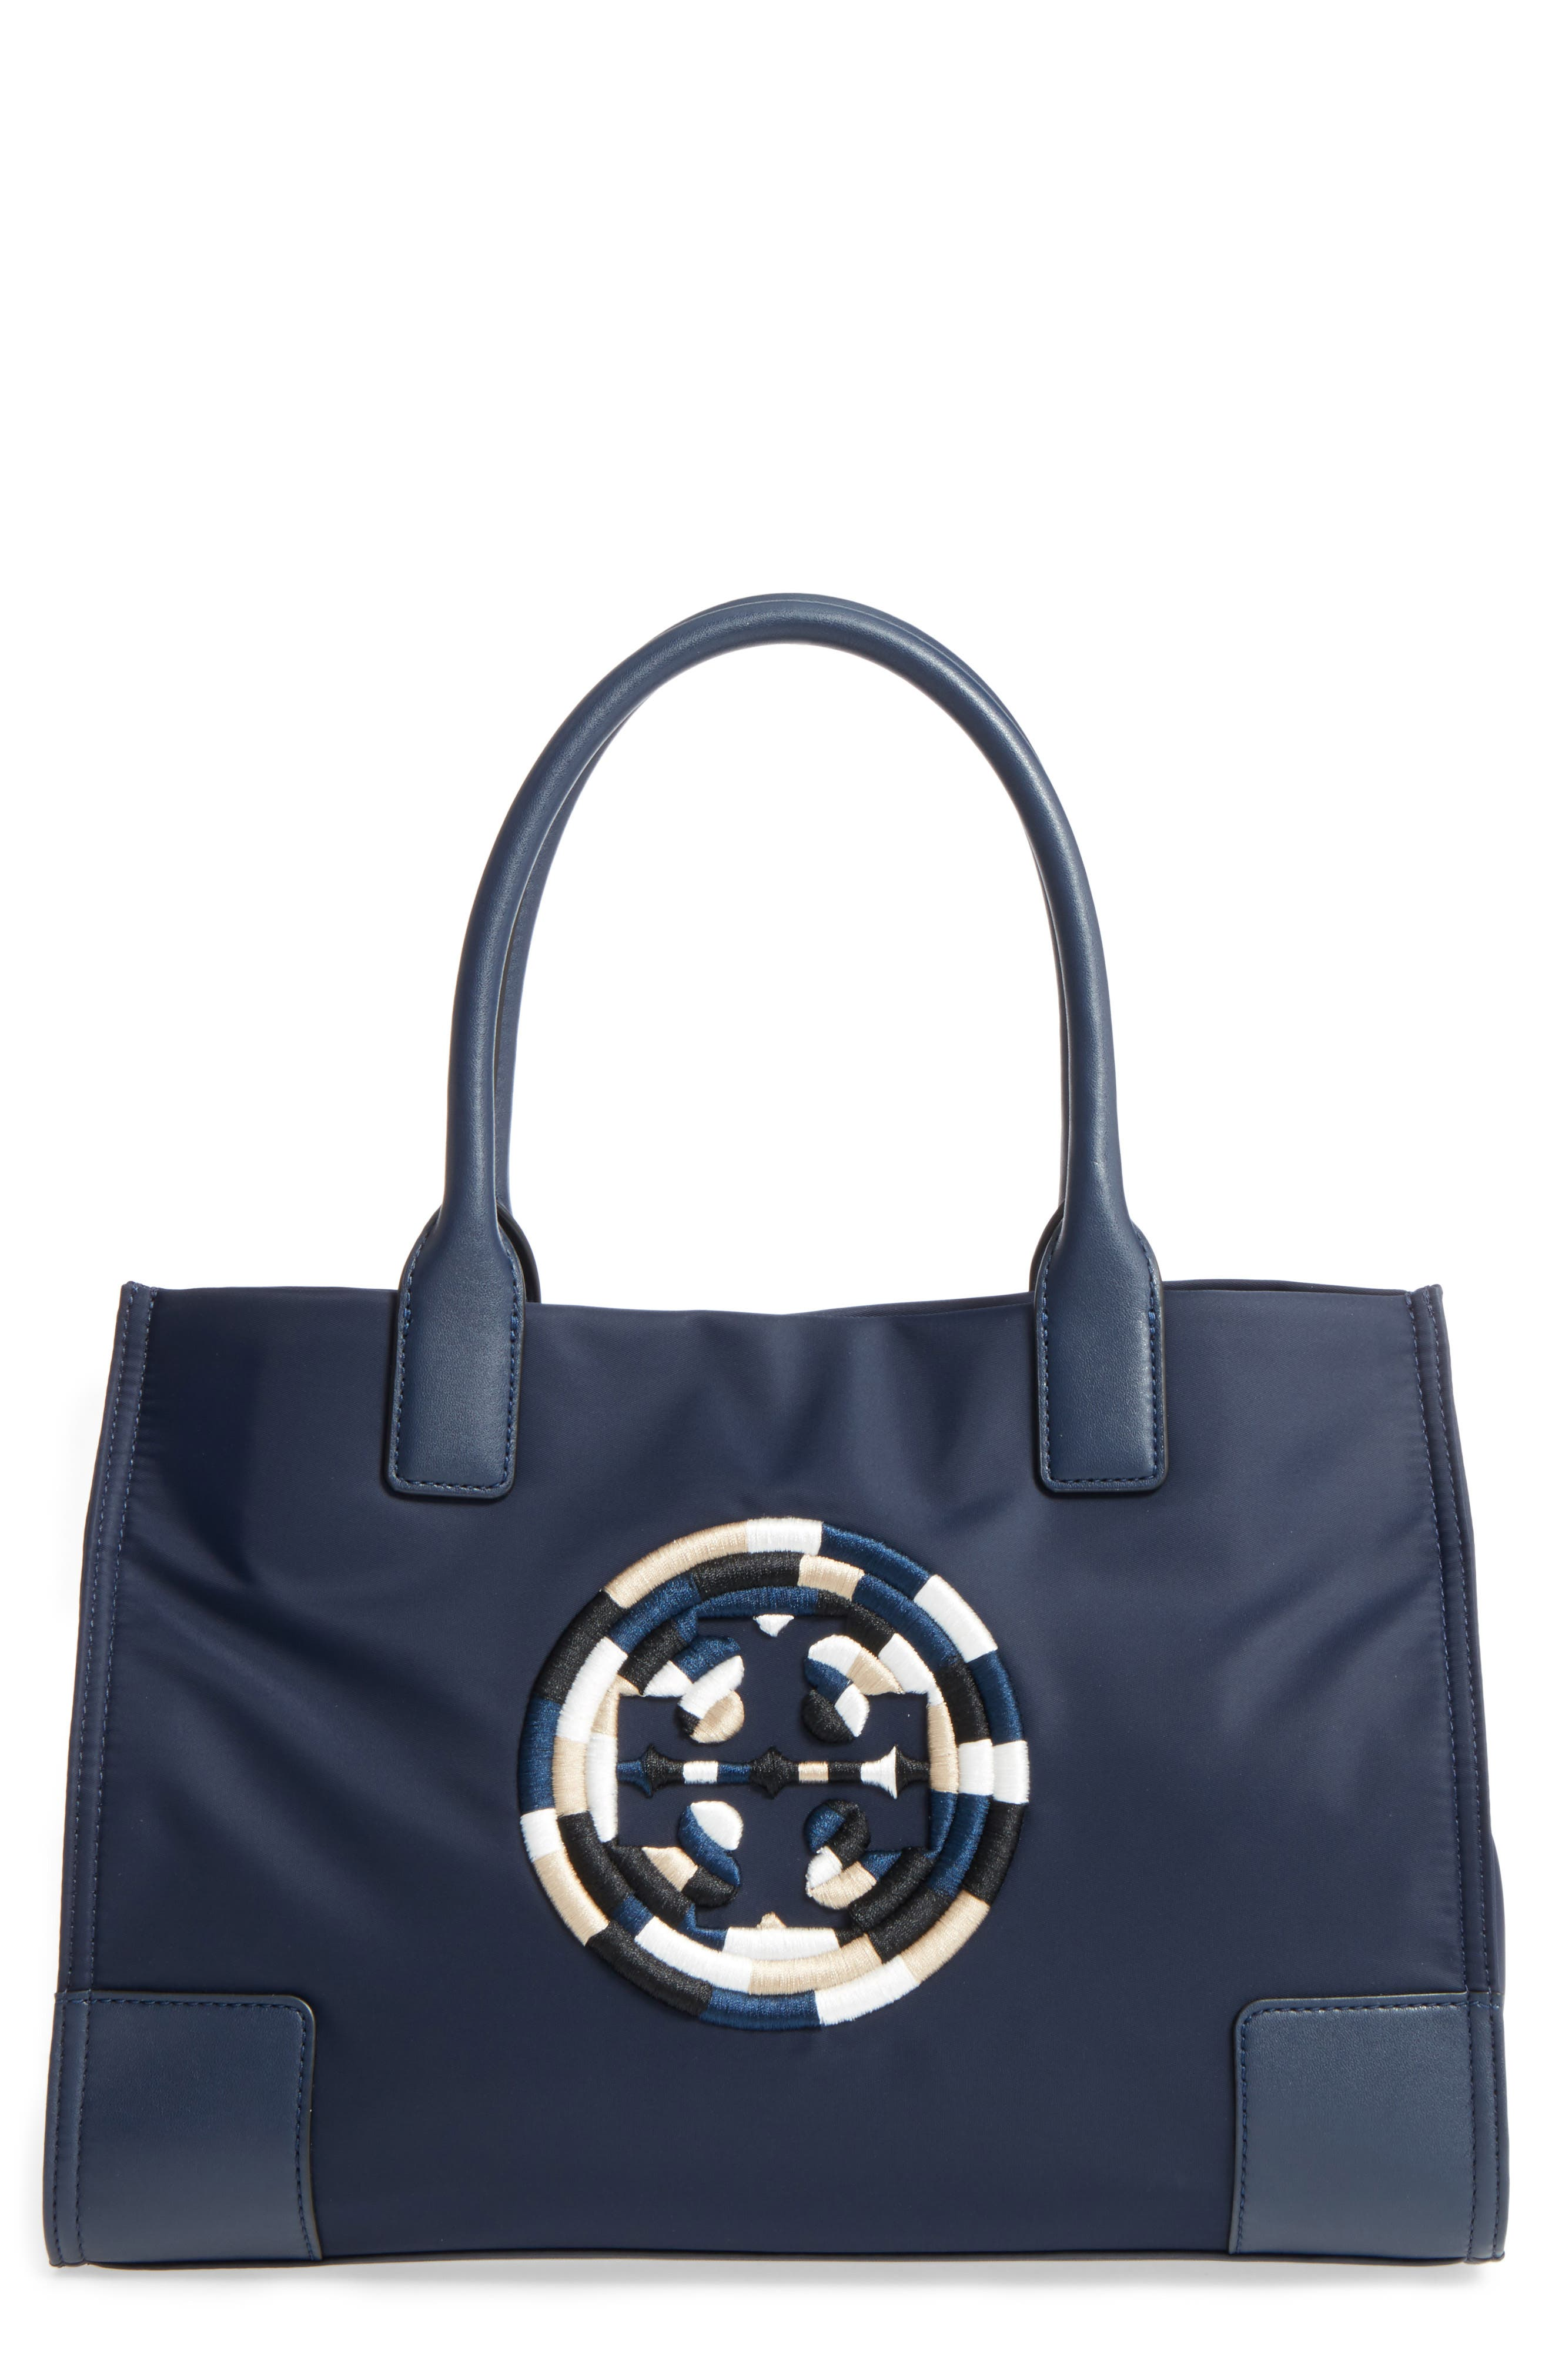 6f1fbaf6616e TORY BURCH MINI ELLA EMBROIDERED LOGO NYLON TOTE - BLUE